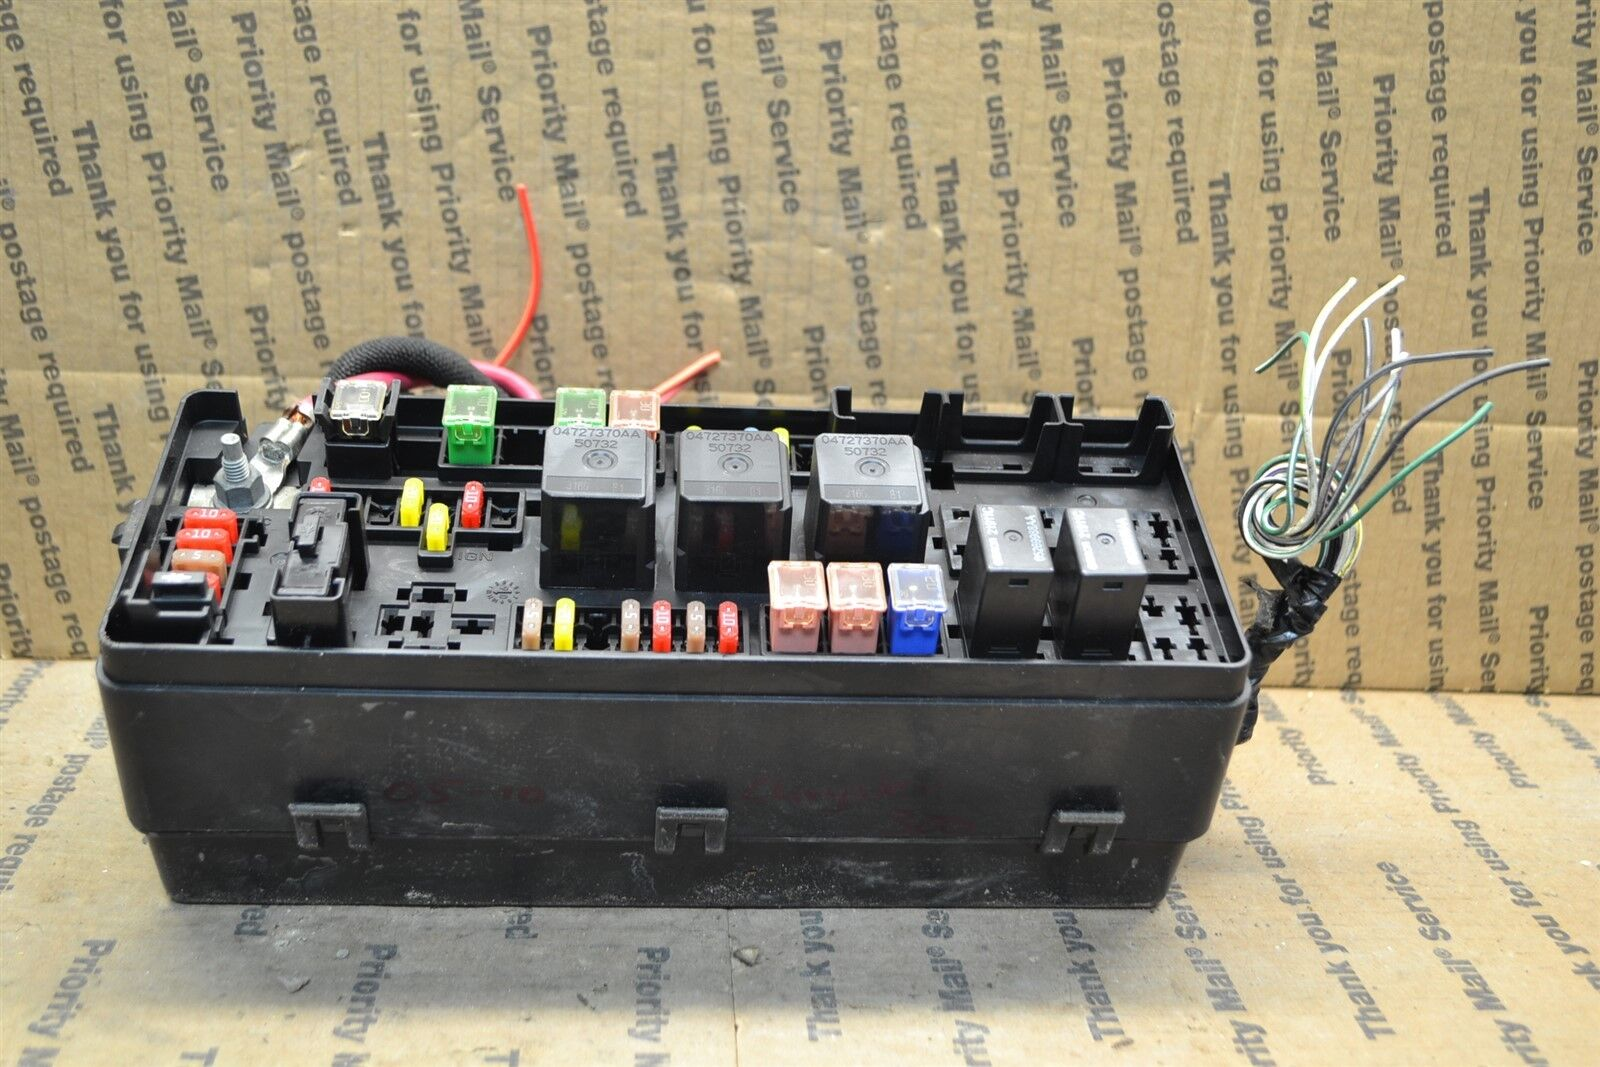 Used 2005 Chrysler 300 Computers Chips Cruise Control And Related 2009 300c Fuse Box 2010 Junction Oem P04607330ac Module 555 6a1